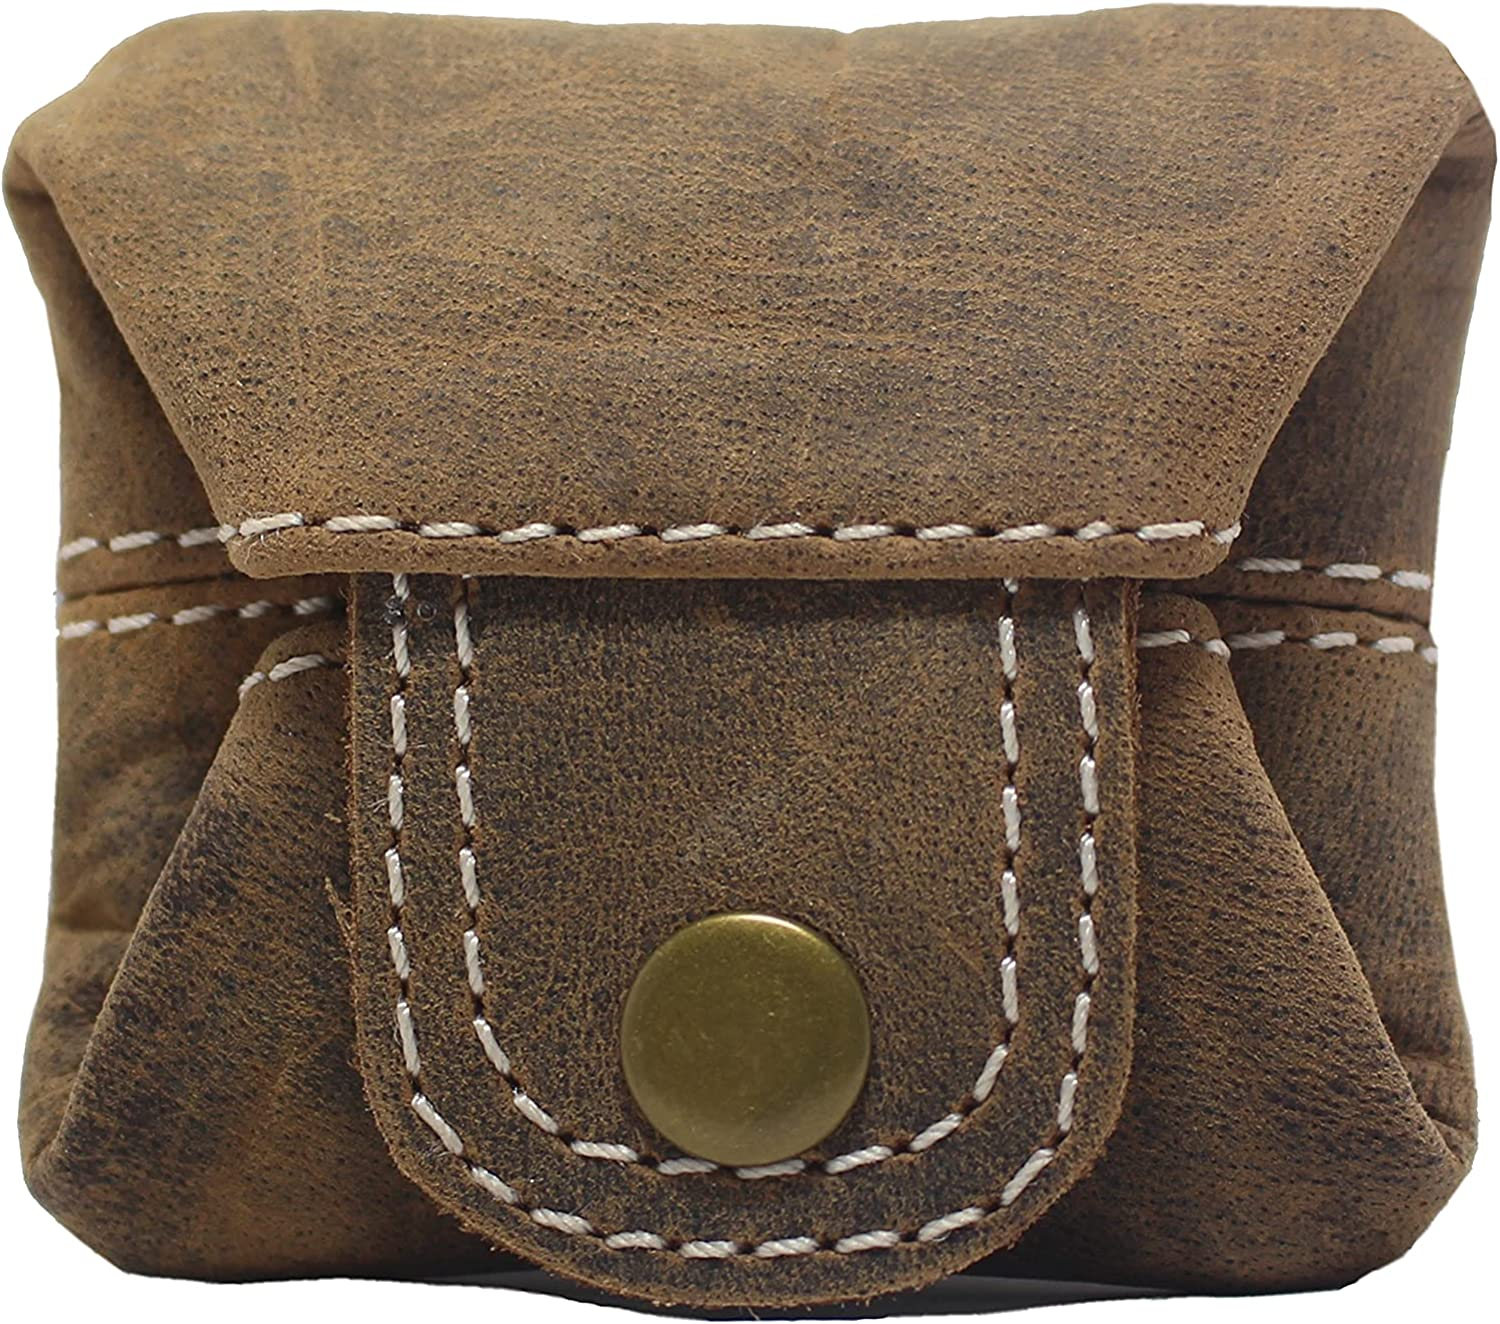 JYOS Leather Coin Purse - Premium Leather Pouch Small Wallet - Medicine Pouch - Contact Lenses Pouch